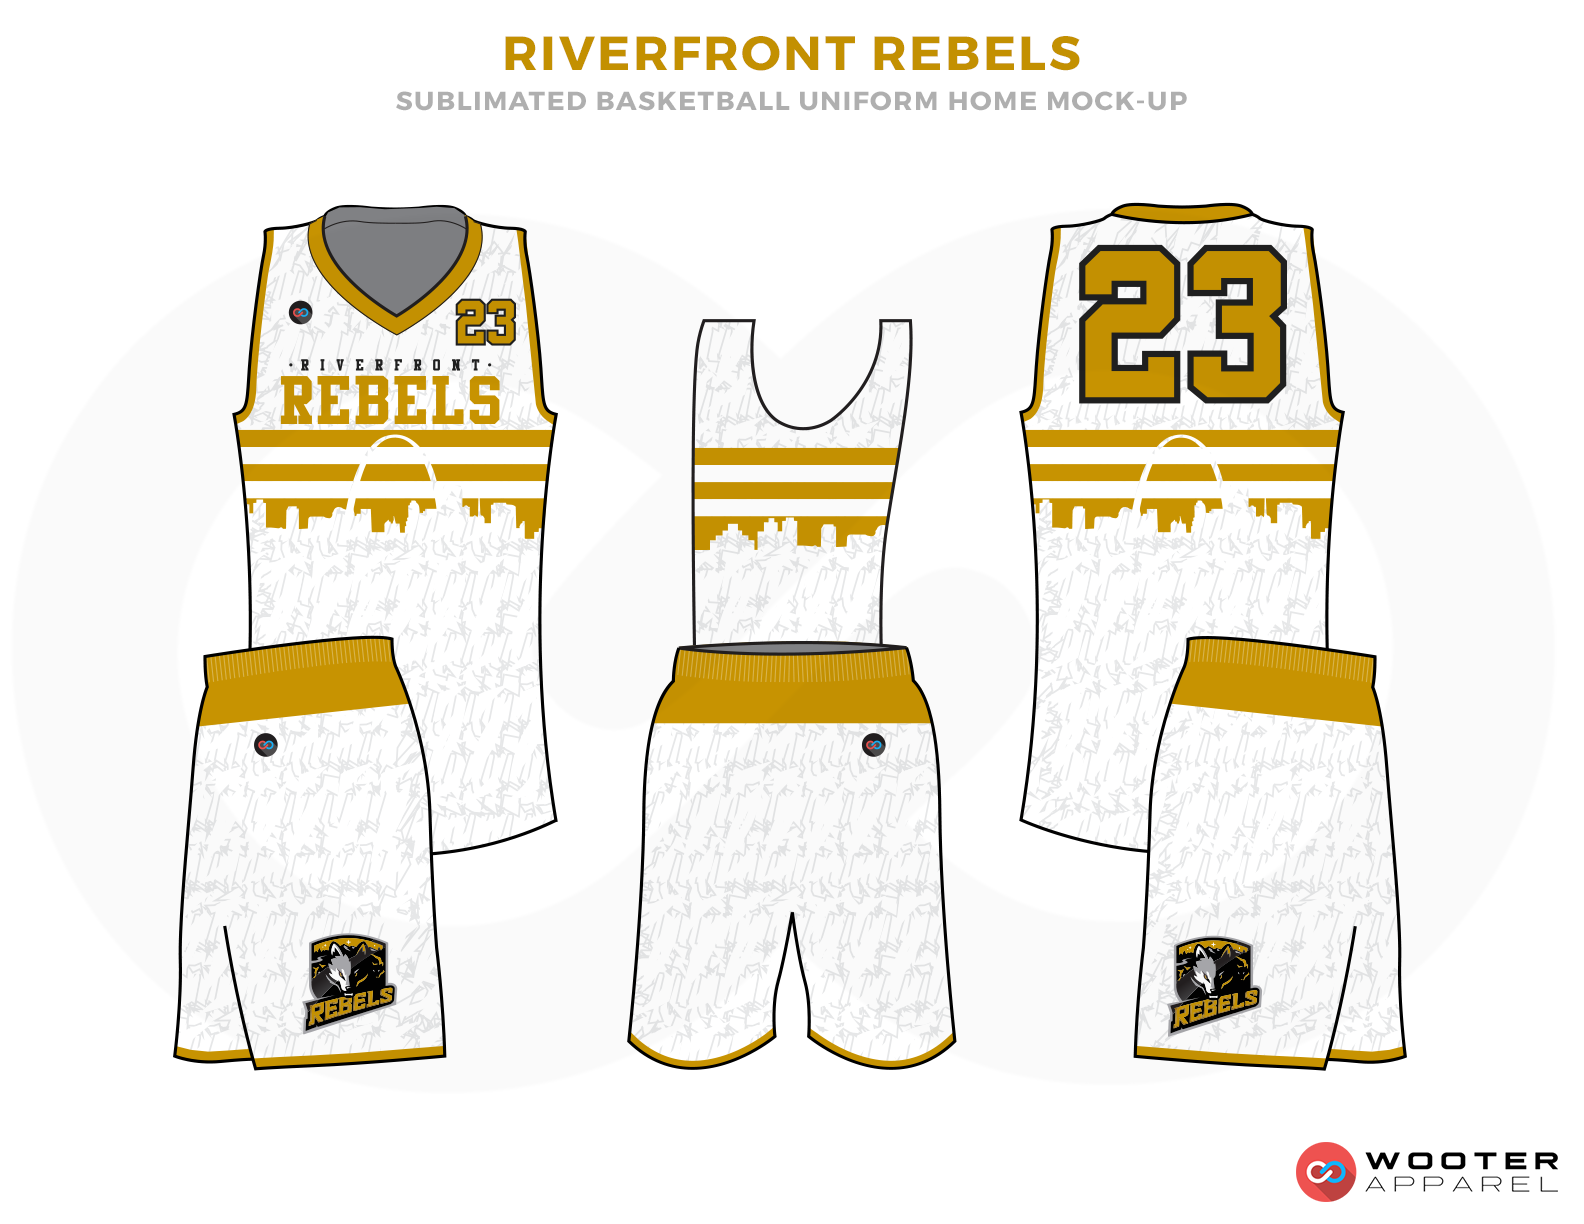 RIVERFRONT REBELS White Grey and Golden Basketball Uniforms, Jersey and Shorts